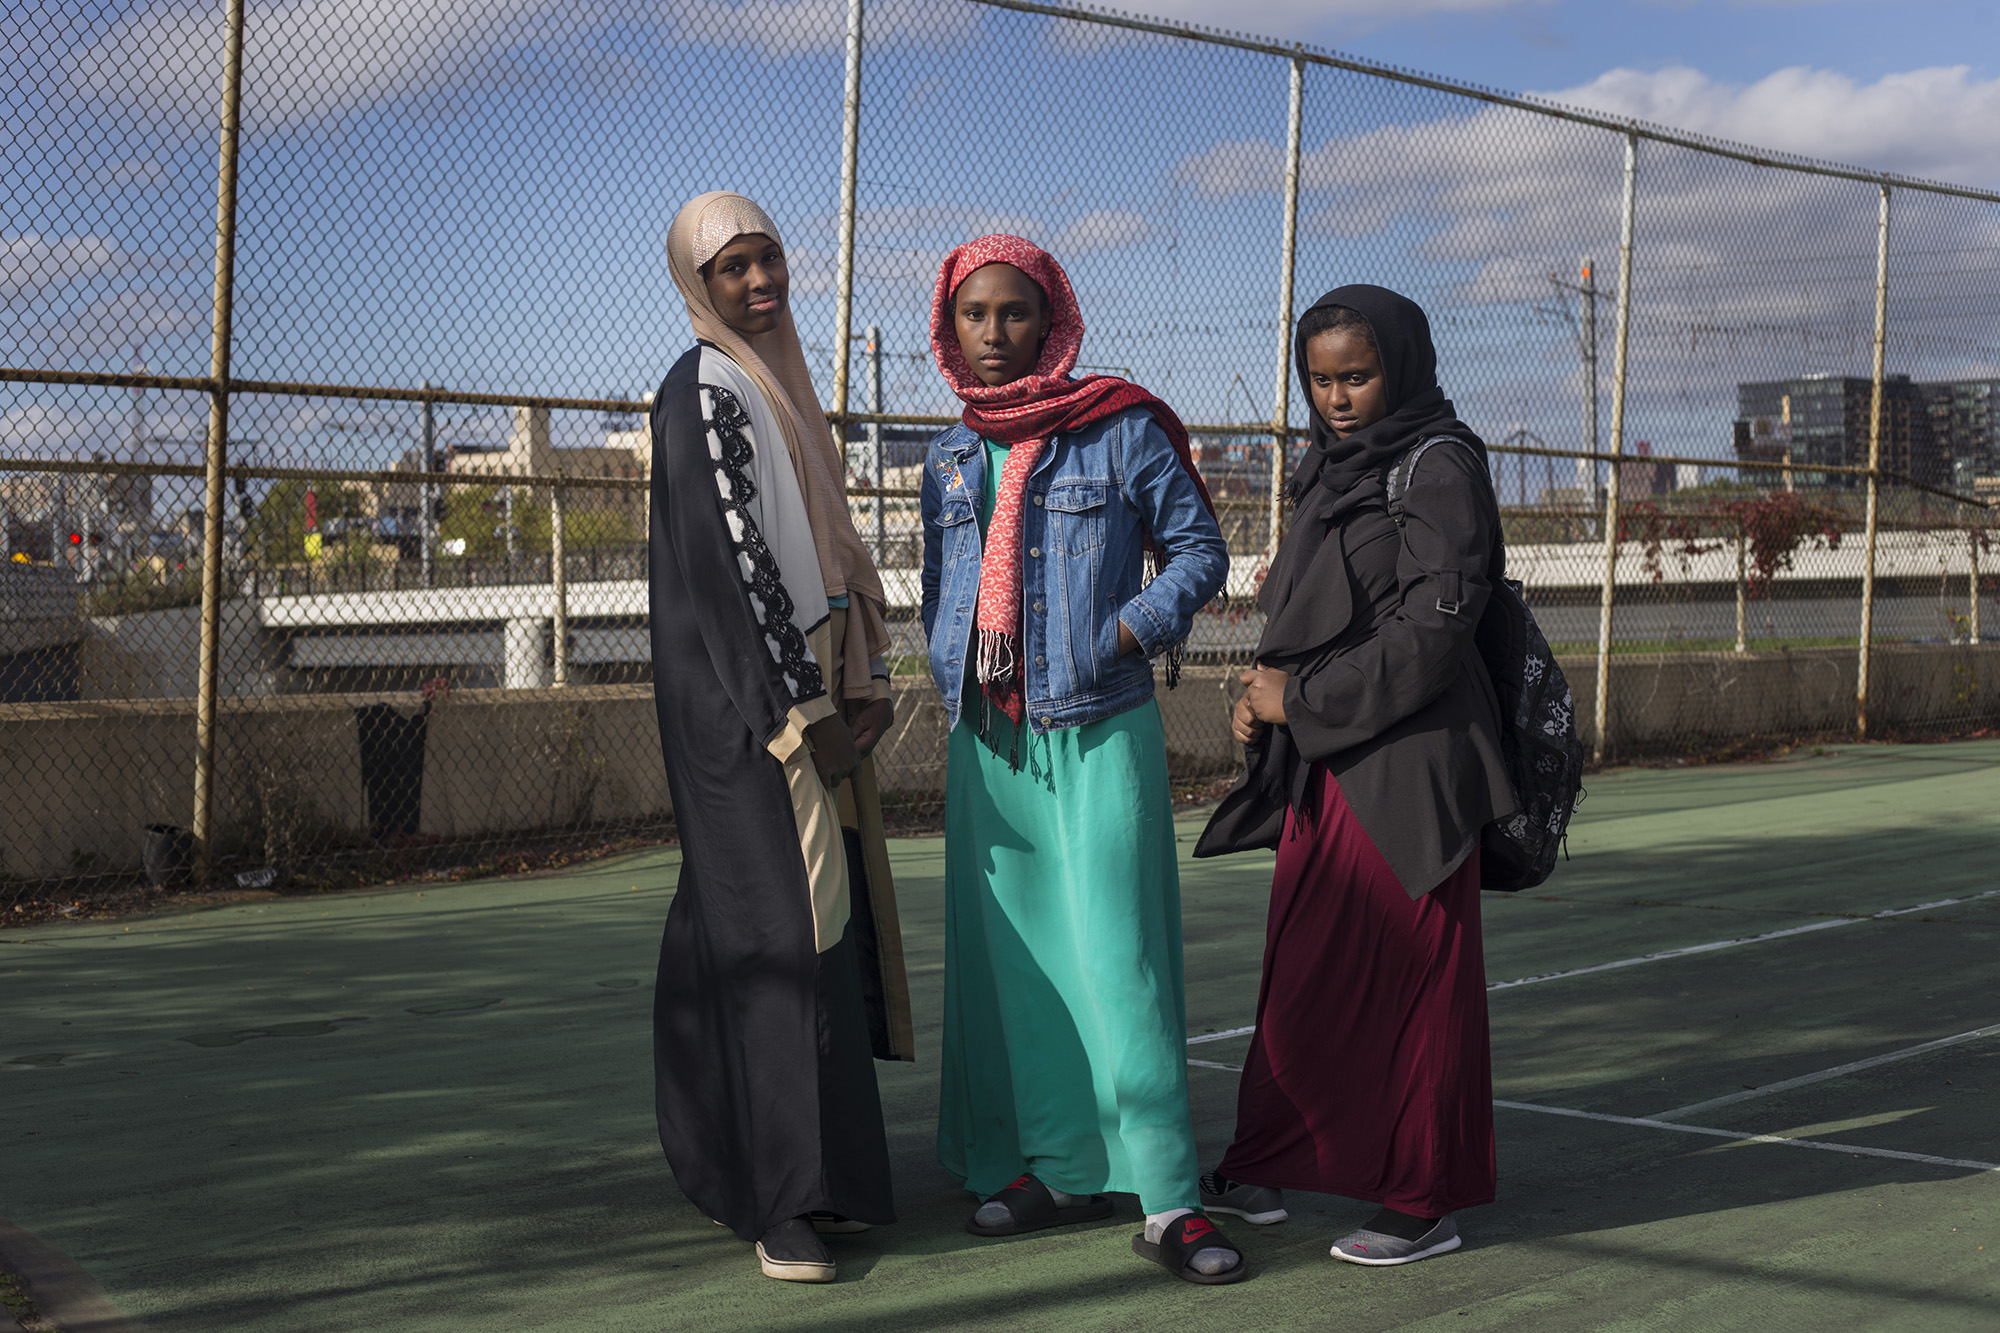 From left to right, Maryam Warsame, 13, Nada Tohu, 13, and Ikran Ibrahim, 12, outside the Brian Coyle center in the Cedar Riverside neighborhood of Minneapolis, Minn., on Thursday, October 12, 2017. The Twin Cities are home to the largest Somali-American population in the United States. (Brittany Greeson/GroundTruth)